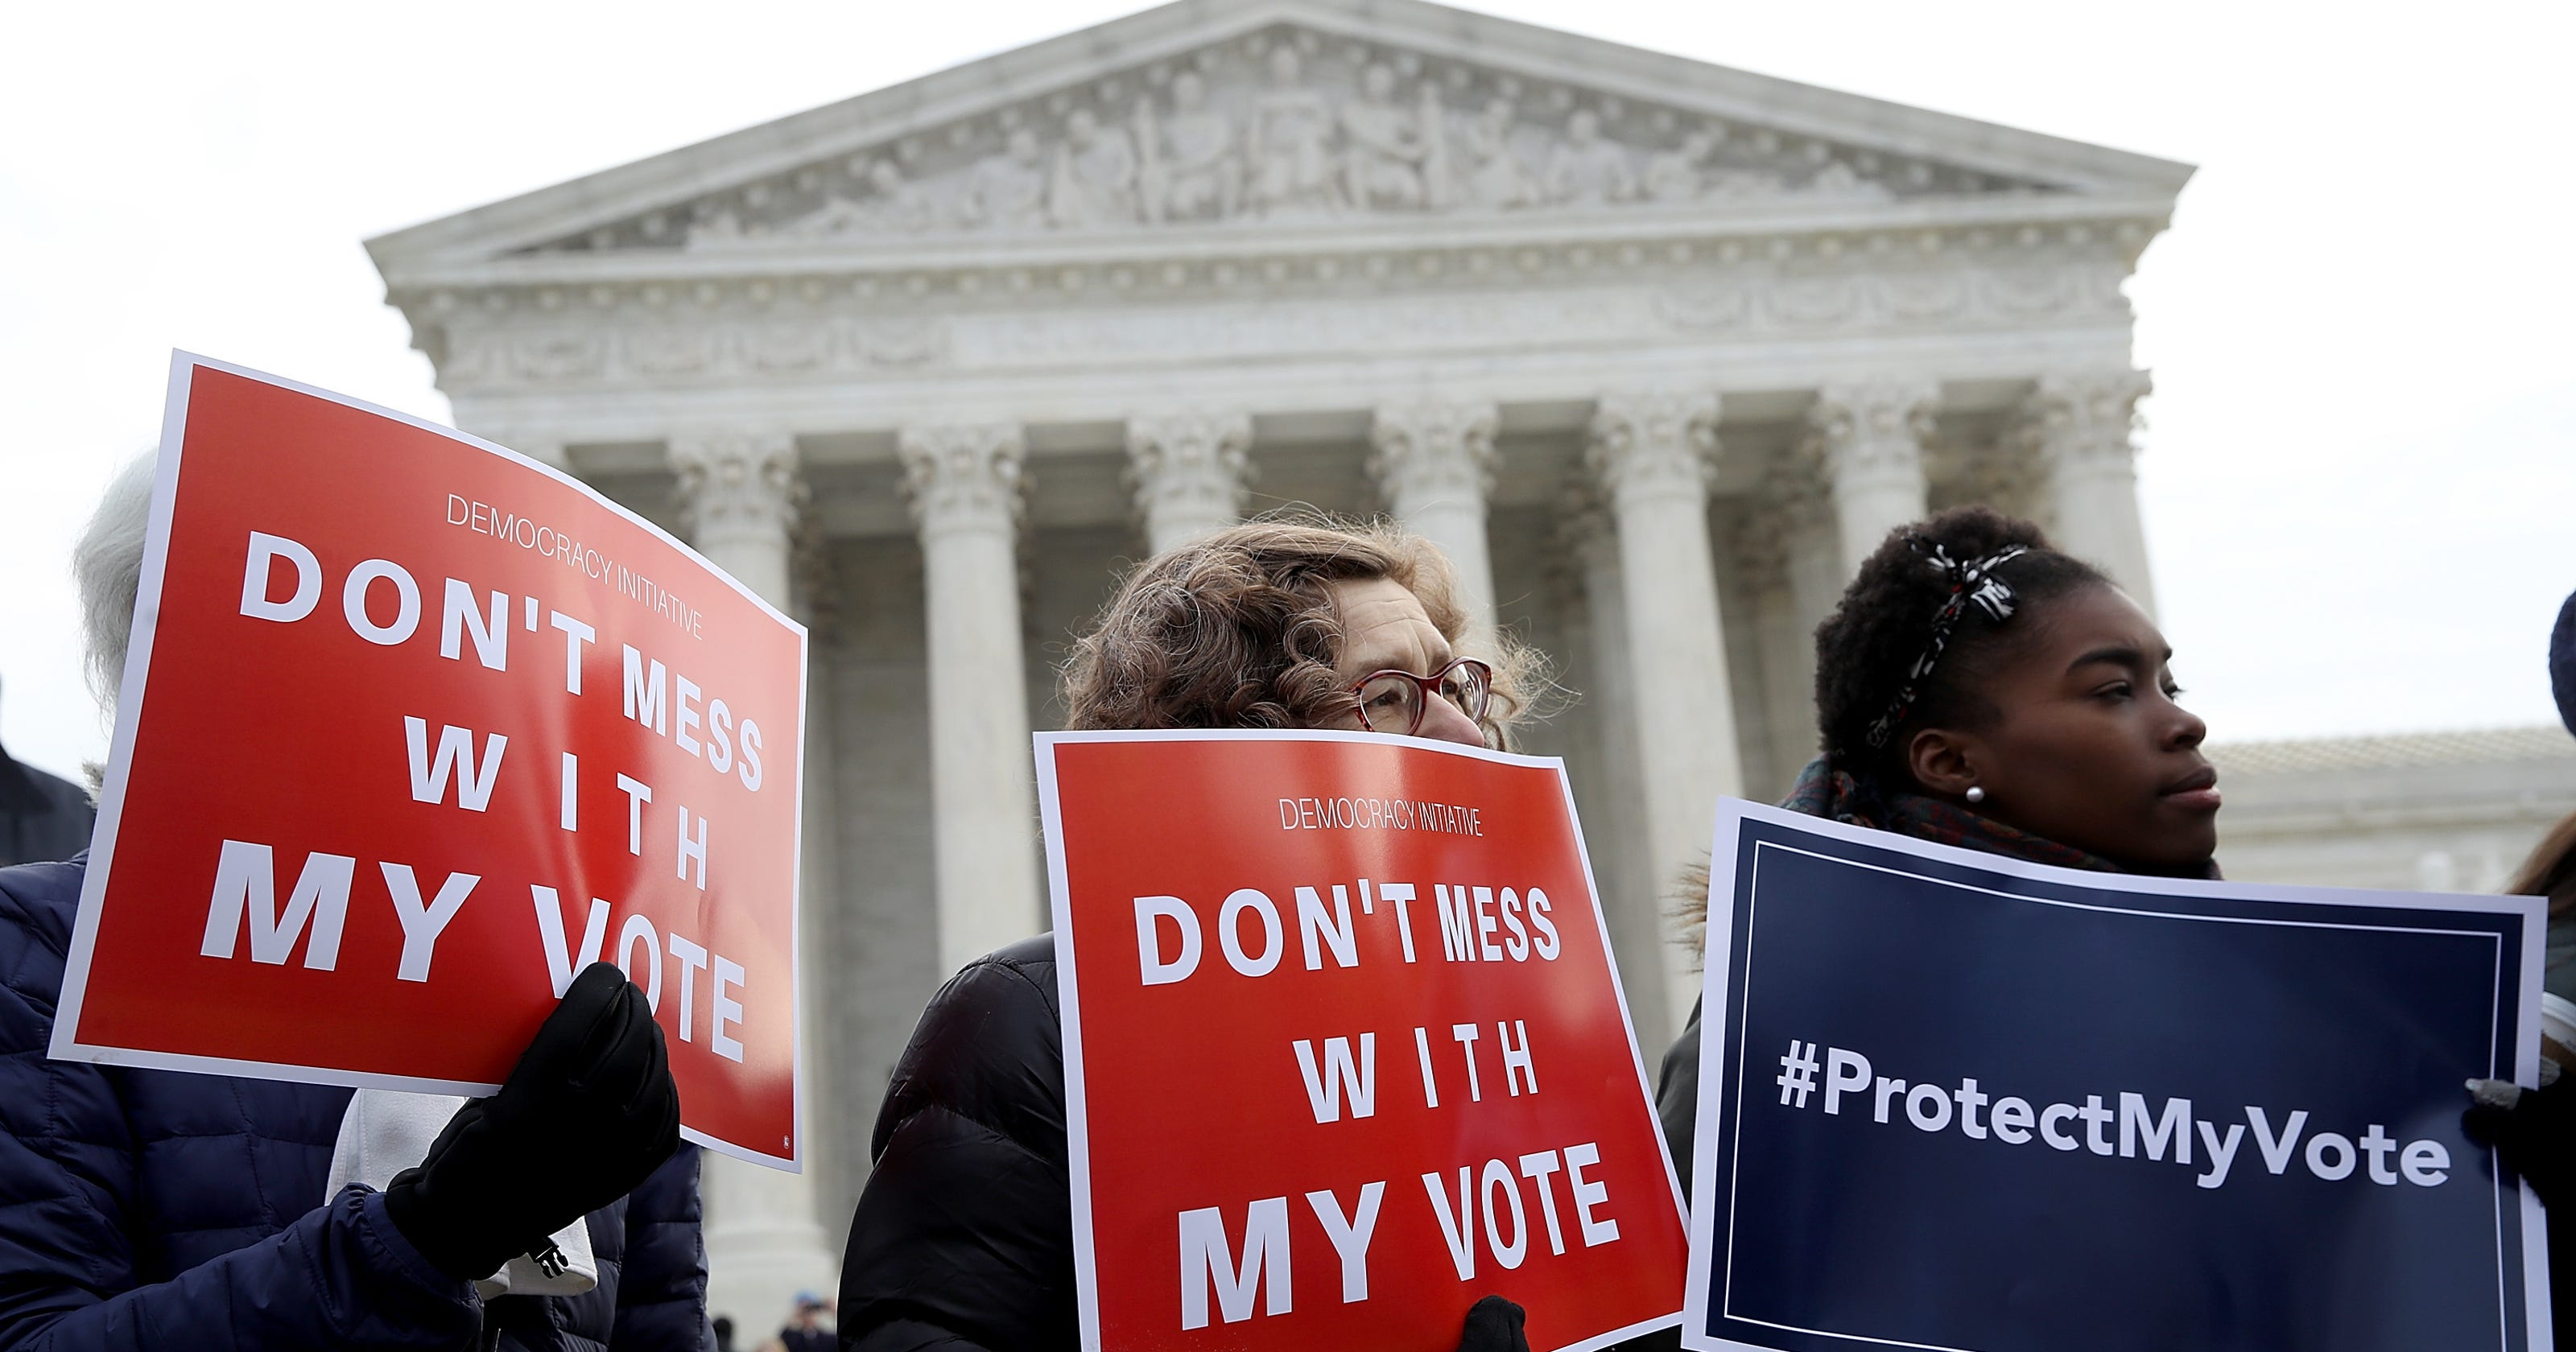 Supreme Court: States can purge voters who don't vote or